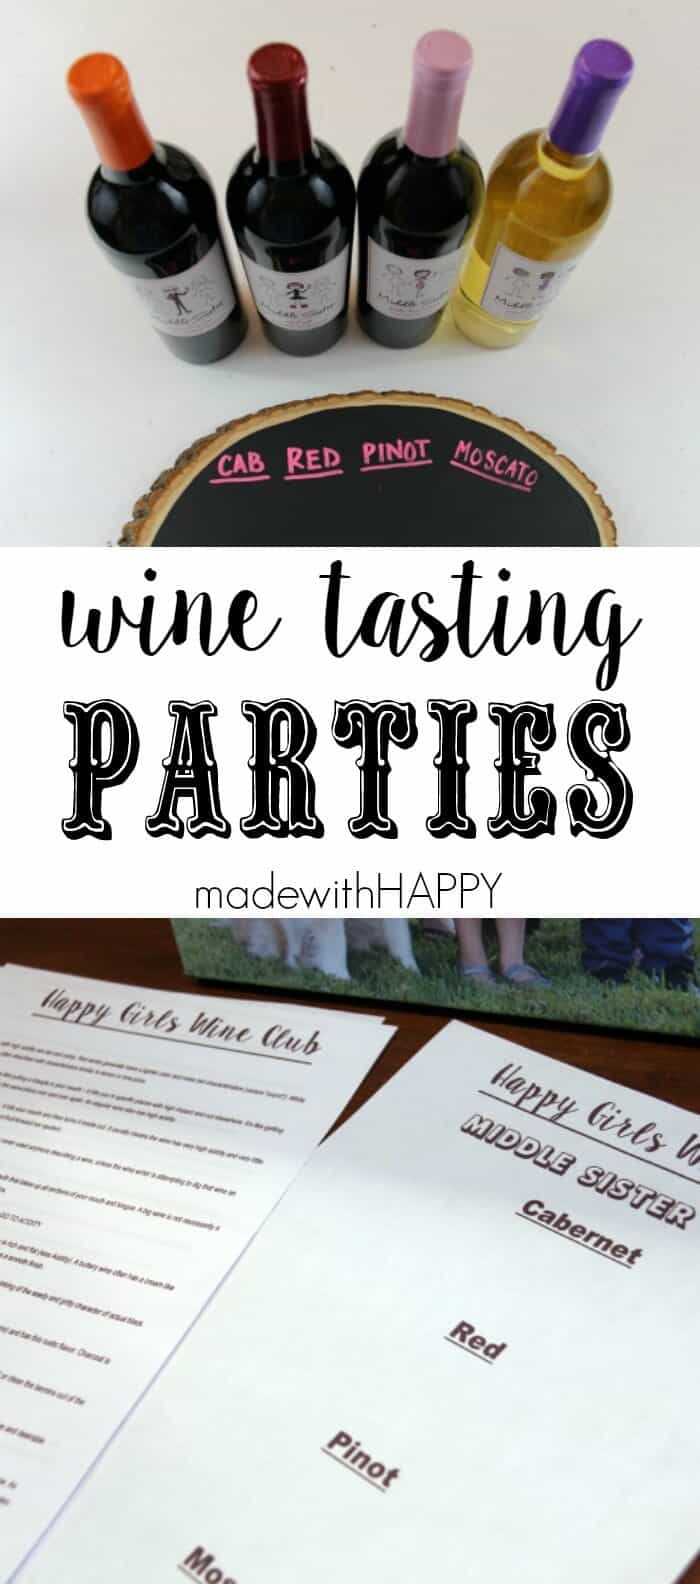 Middle Sister Wine | Happy Girls Wine CLub | Fun Wine Club descriptors and girls night fun. #MiddleSister #DropsofWisdom AD